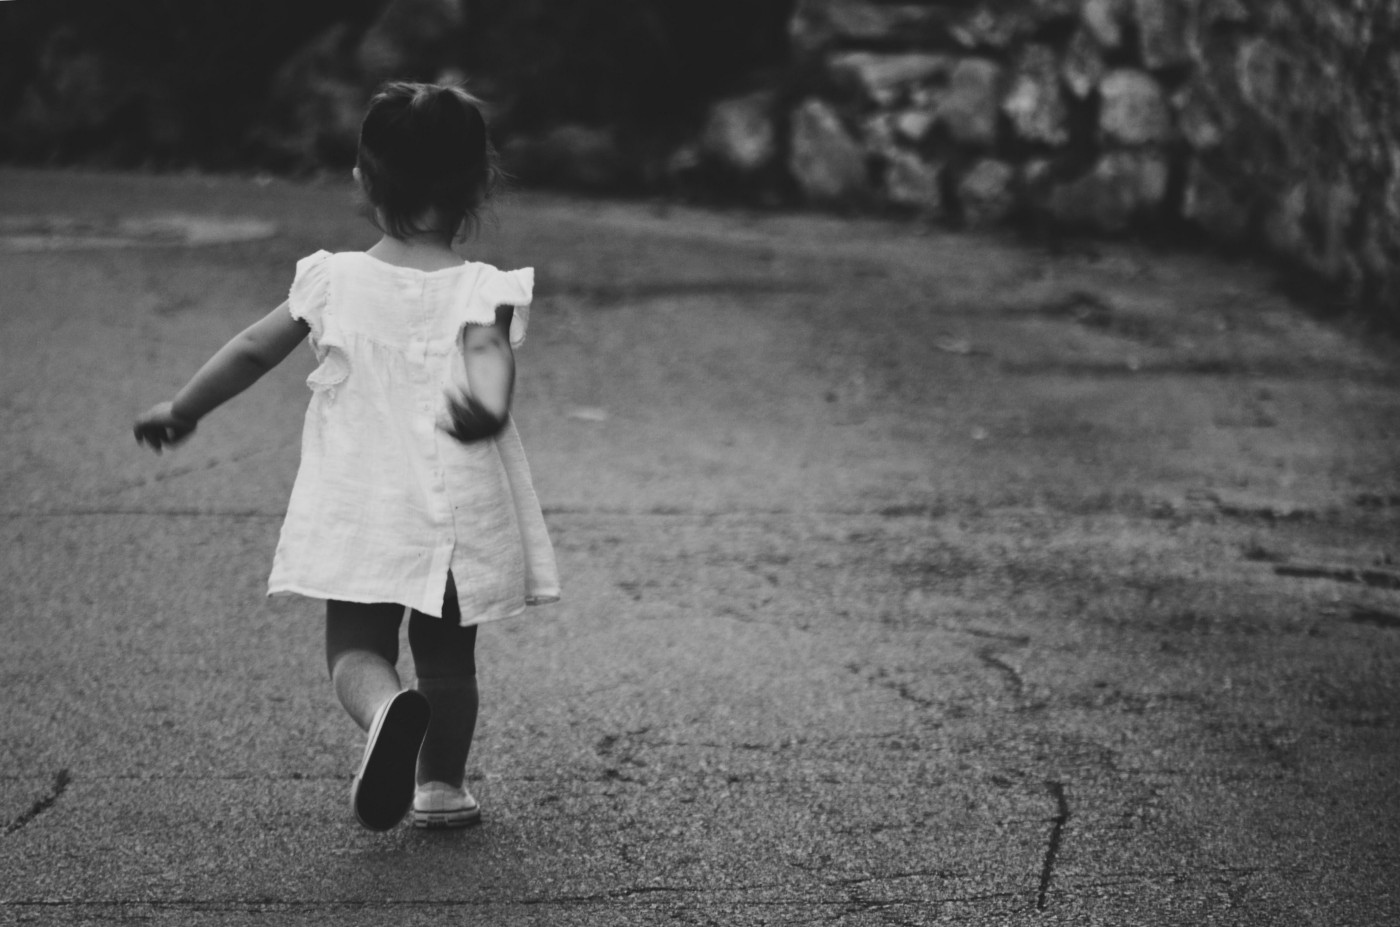 Little girl in a white dress and white shoes walking on a paved road with her back turned to the camera. Her hair is in a ponytail hair-do and some hedges are in the background.